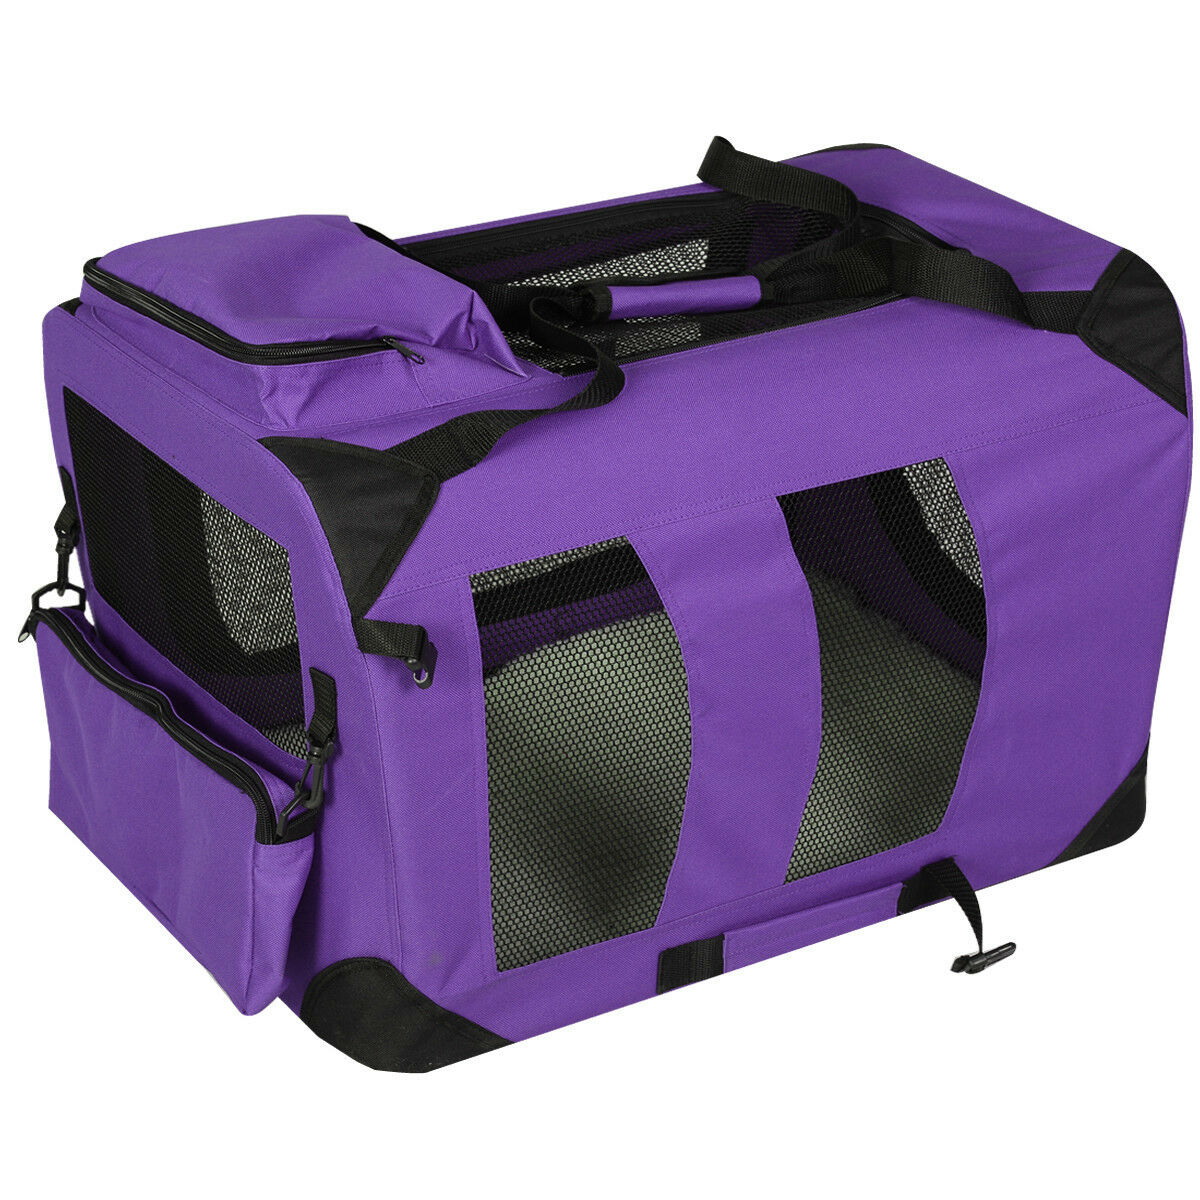 Pet Dog Carrier Portable House Soft Sided Cat Comfort